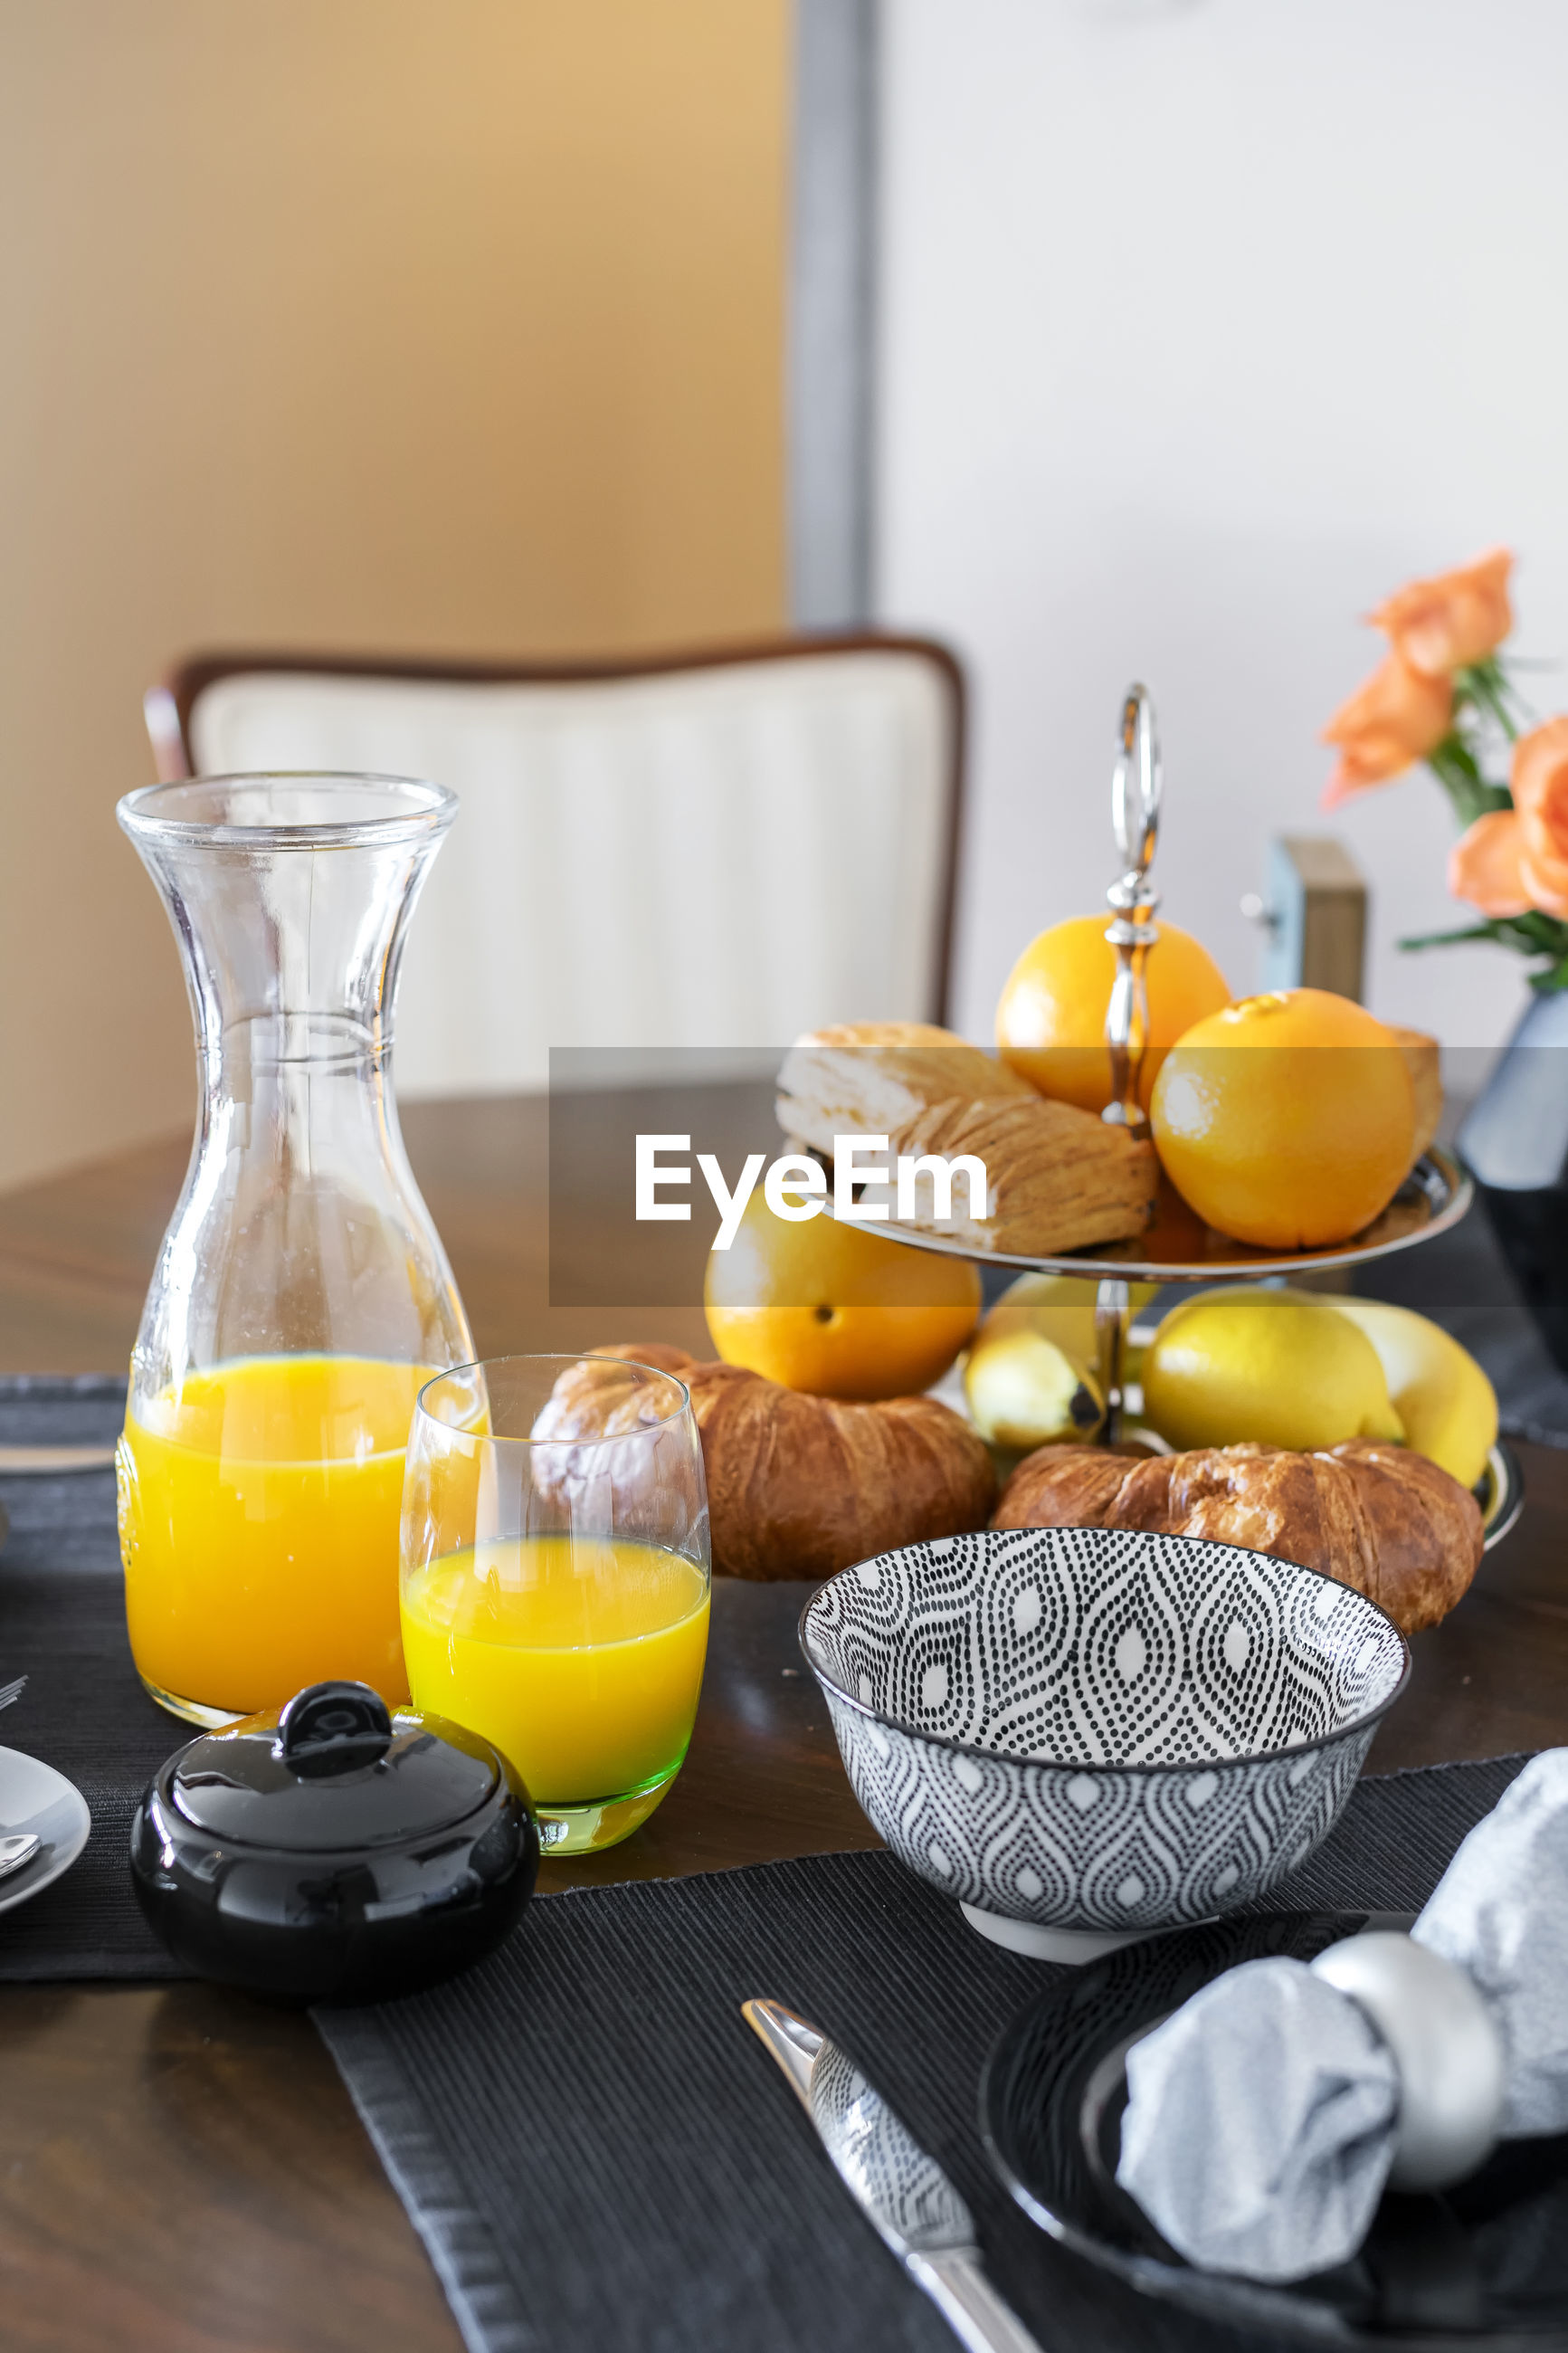 YELLOW AND FRUITS IN GLASS ON TABLE